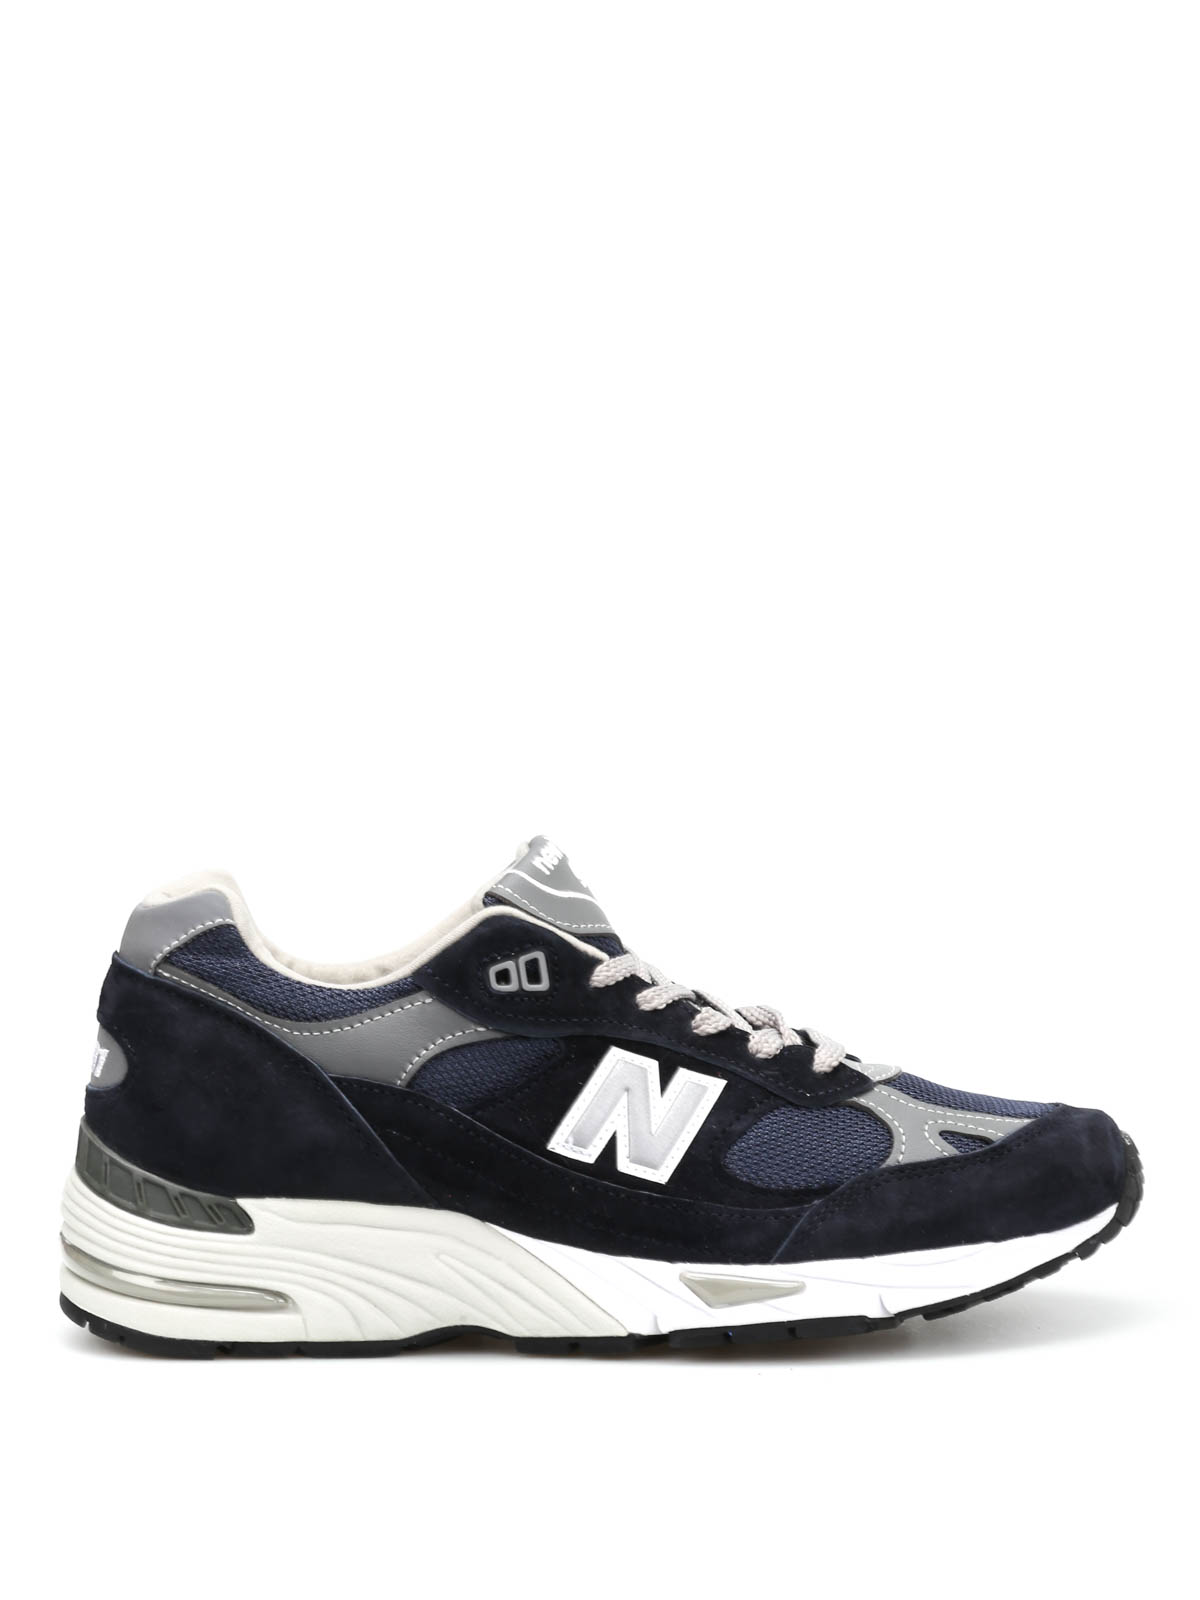 991 suede running shoes by new balance trainers ikrix. Black Bedroom Furniture Sets. Home Design Ideas